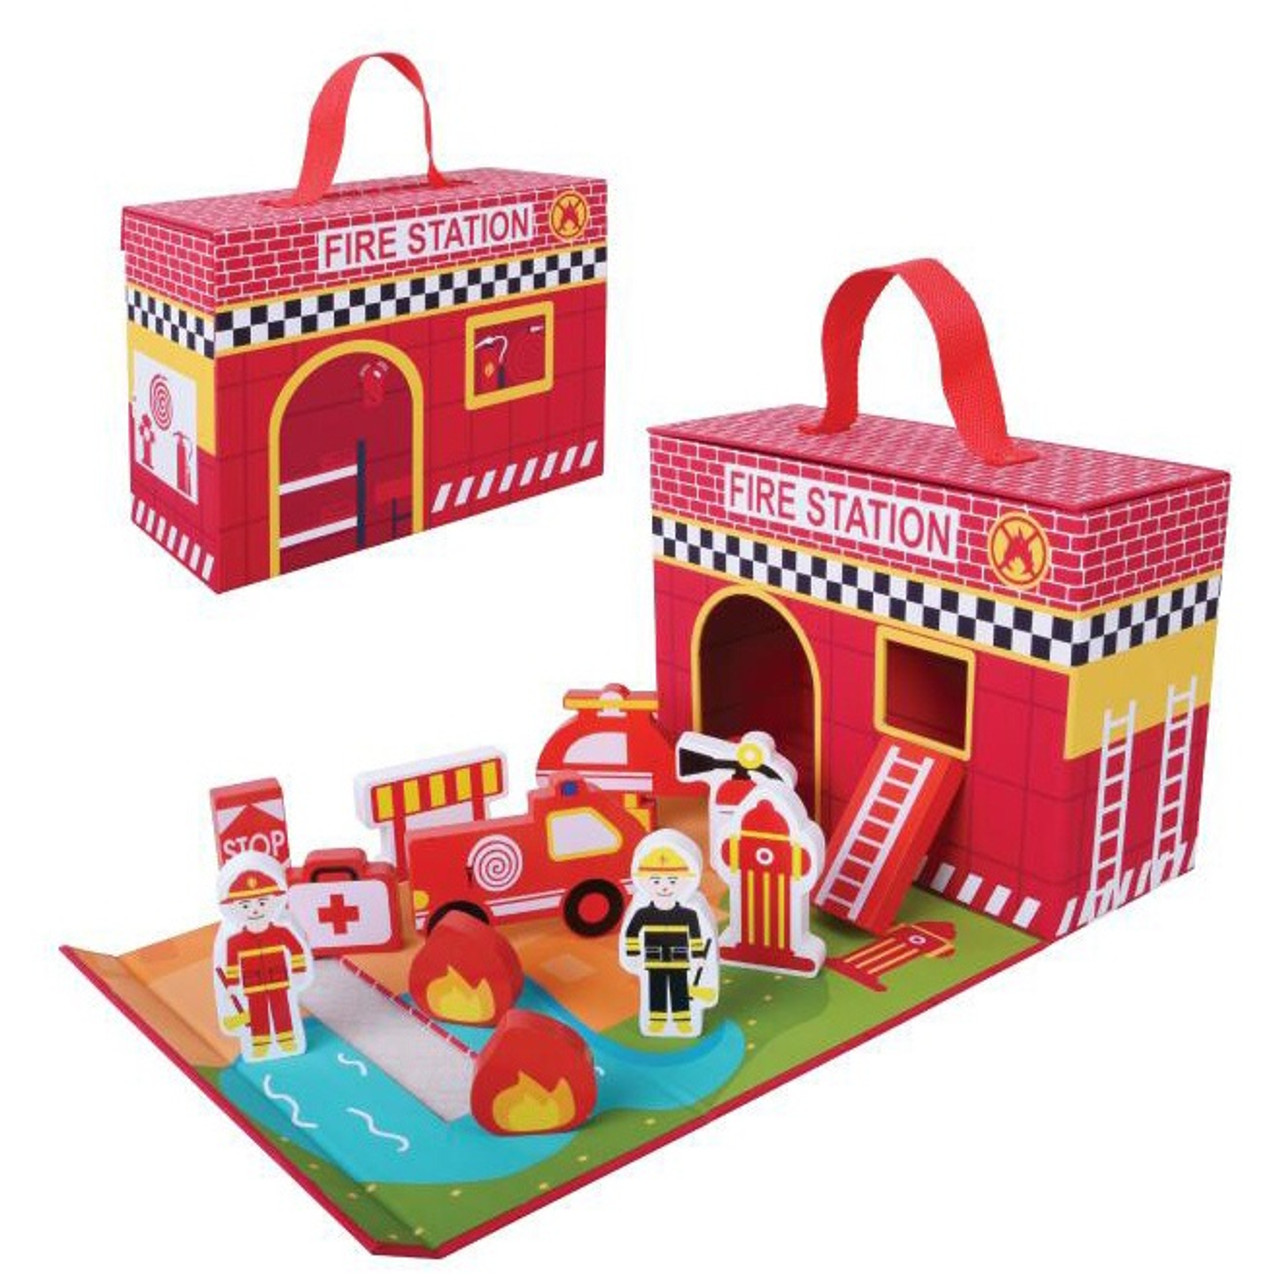 Toyslink Foldable Fire Station Playset at Baby Barn Discounts Stunning fold out fire station with wooden accessories and storage box.